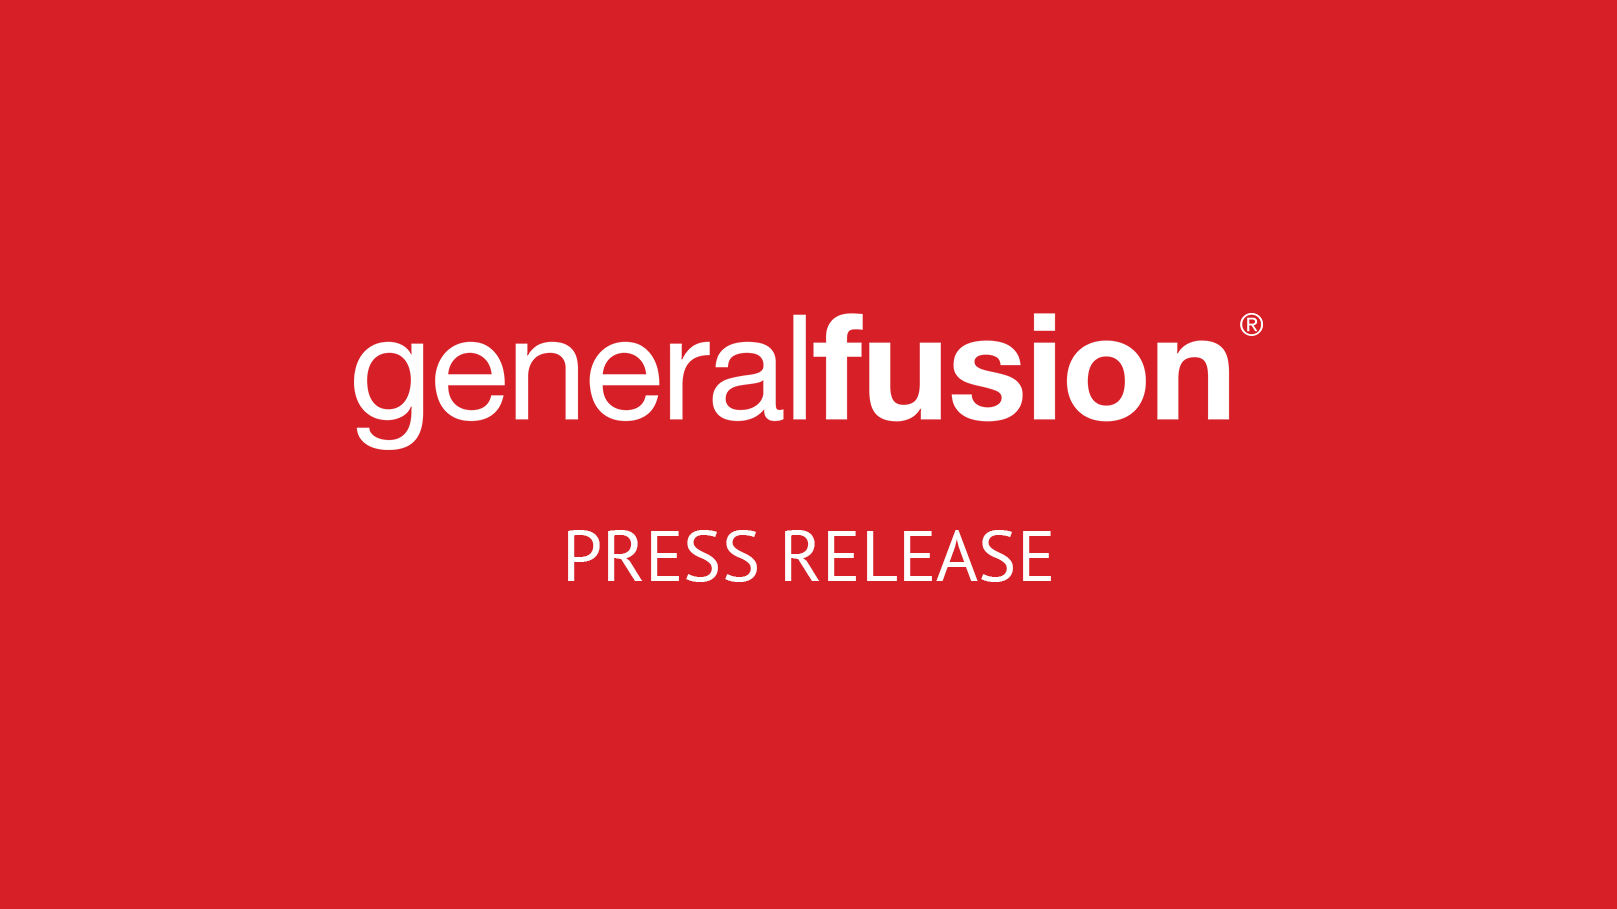 General Fusion appoints Christofer Mowry CEO, names new Chairman